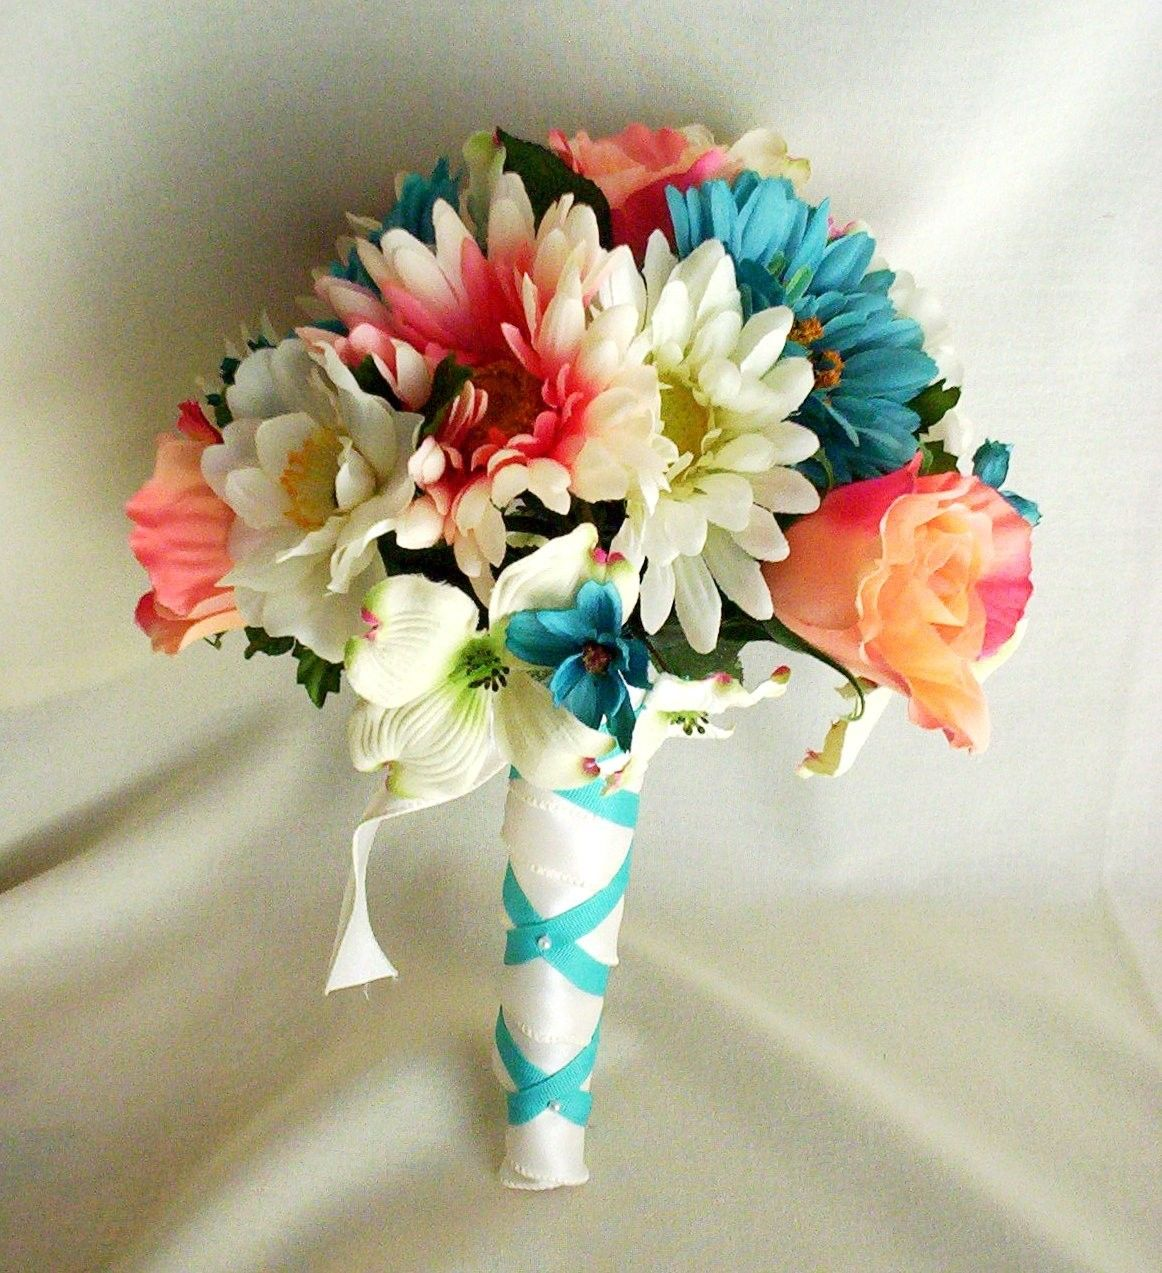 Teal Wedding Flowers Ideas: Coral And Teal Wedding Flowers